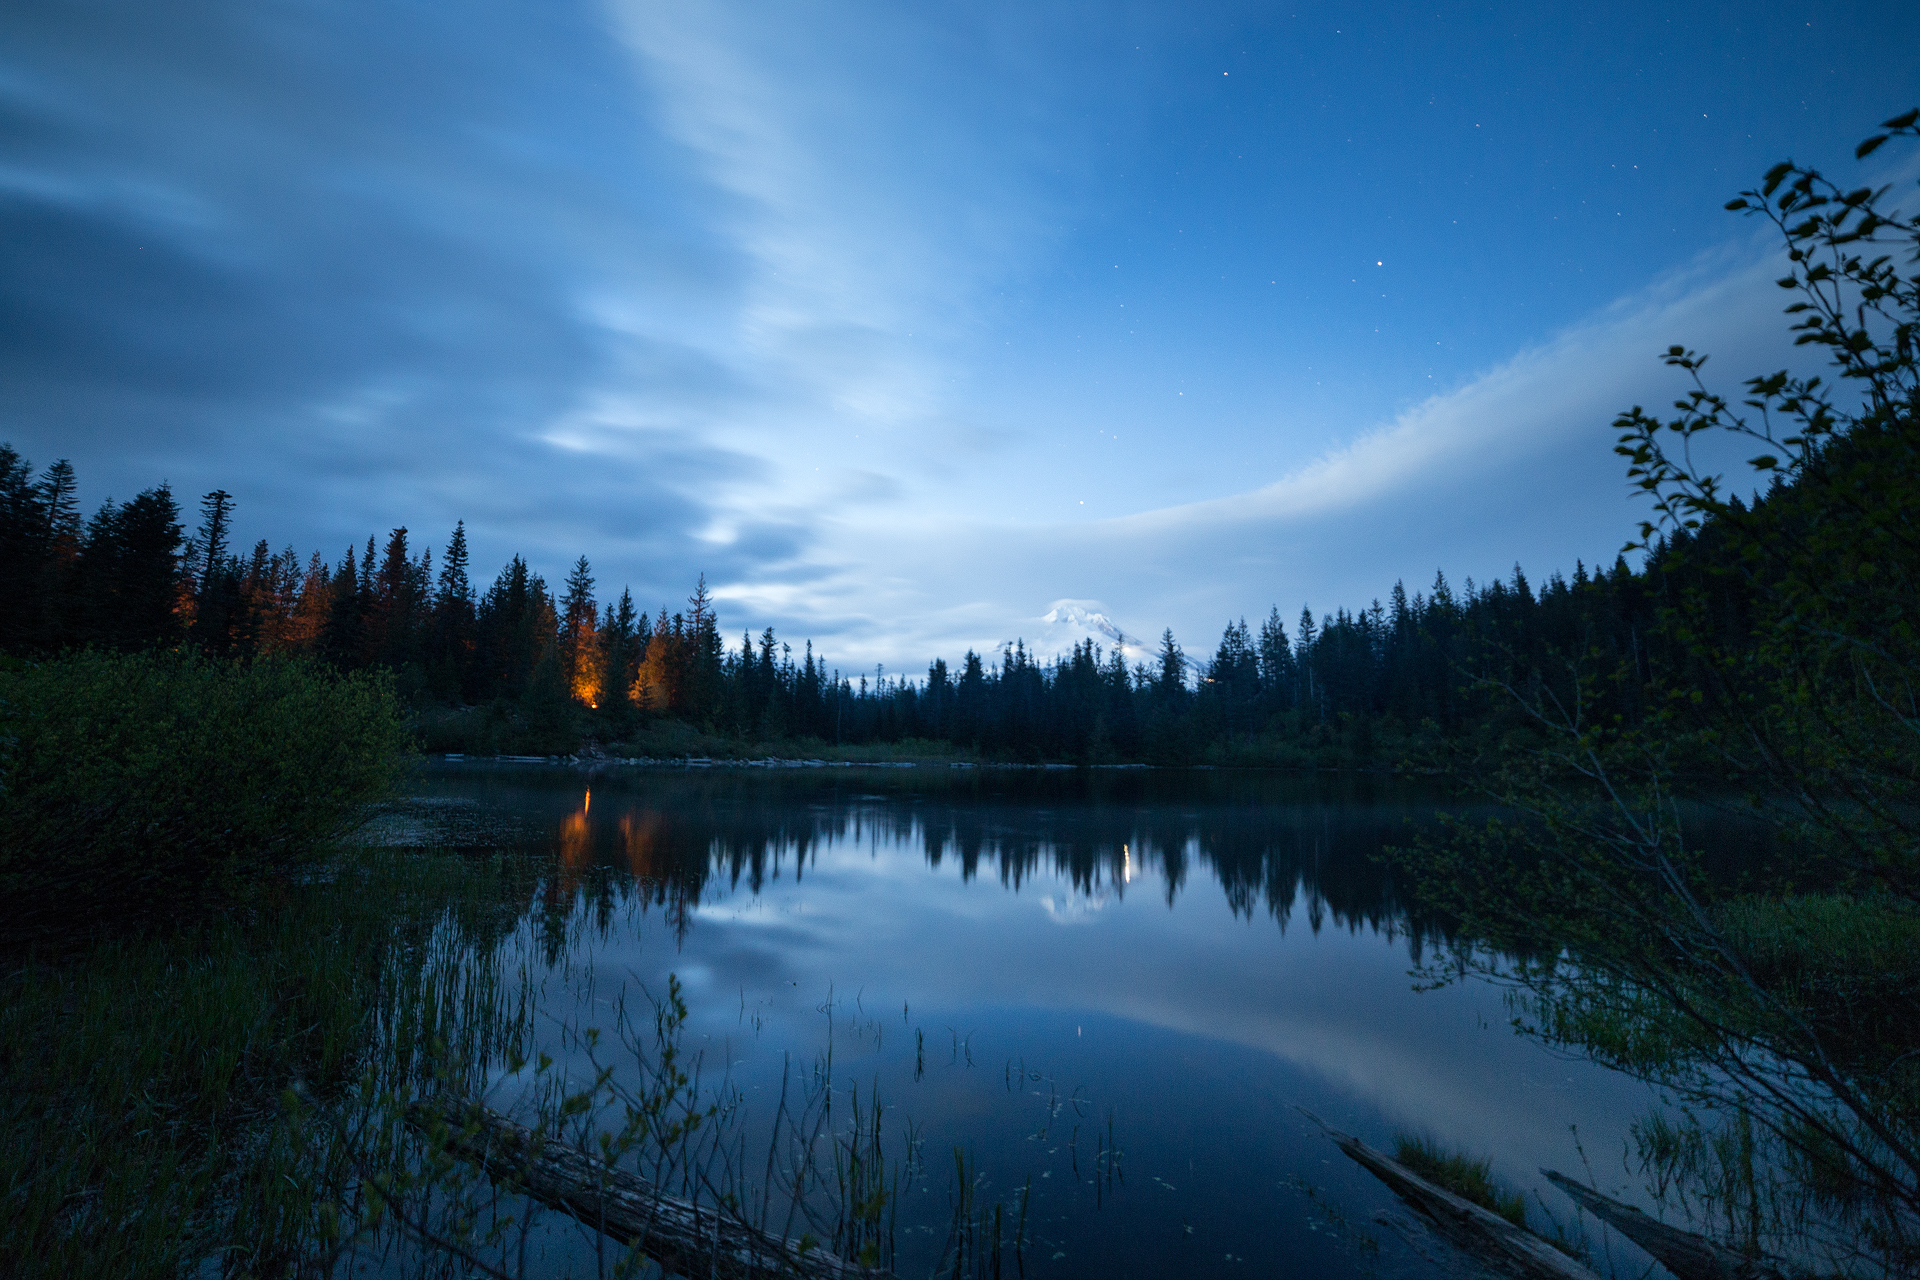 the national parks girl_oregon_mt hood_mirror lake_night photography_night sky_canon_tom dick and harry mountain.JPG